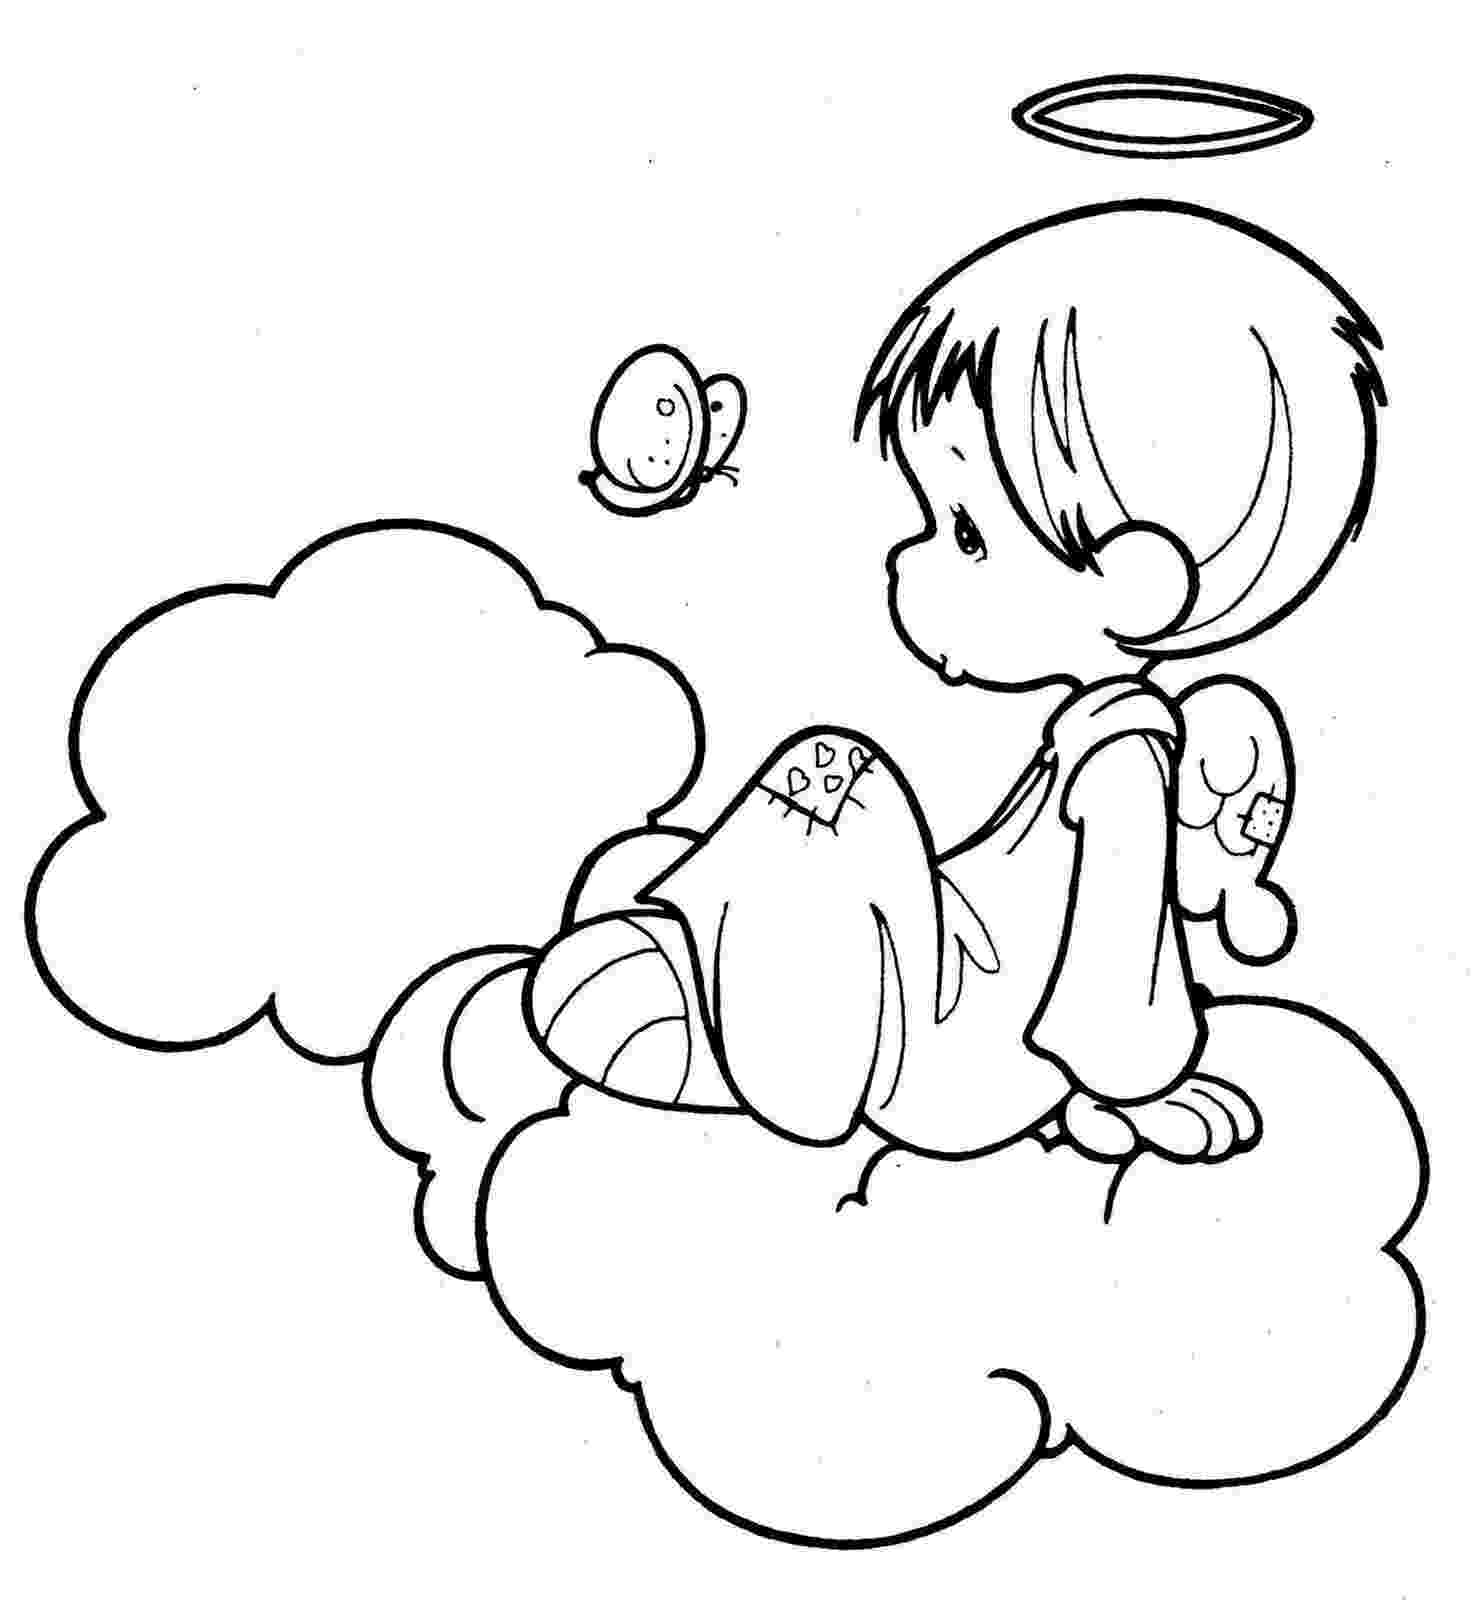 angel pictures to color free printable angel coloring pages for kids to pictures color angel 1 1